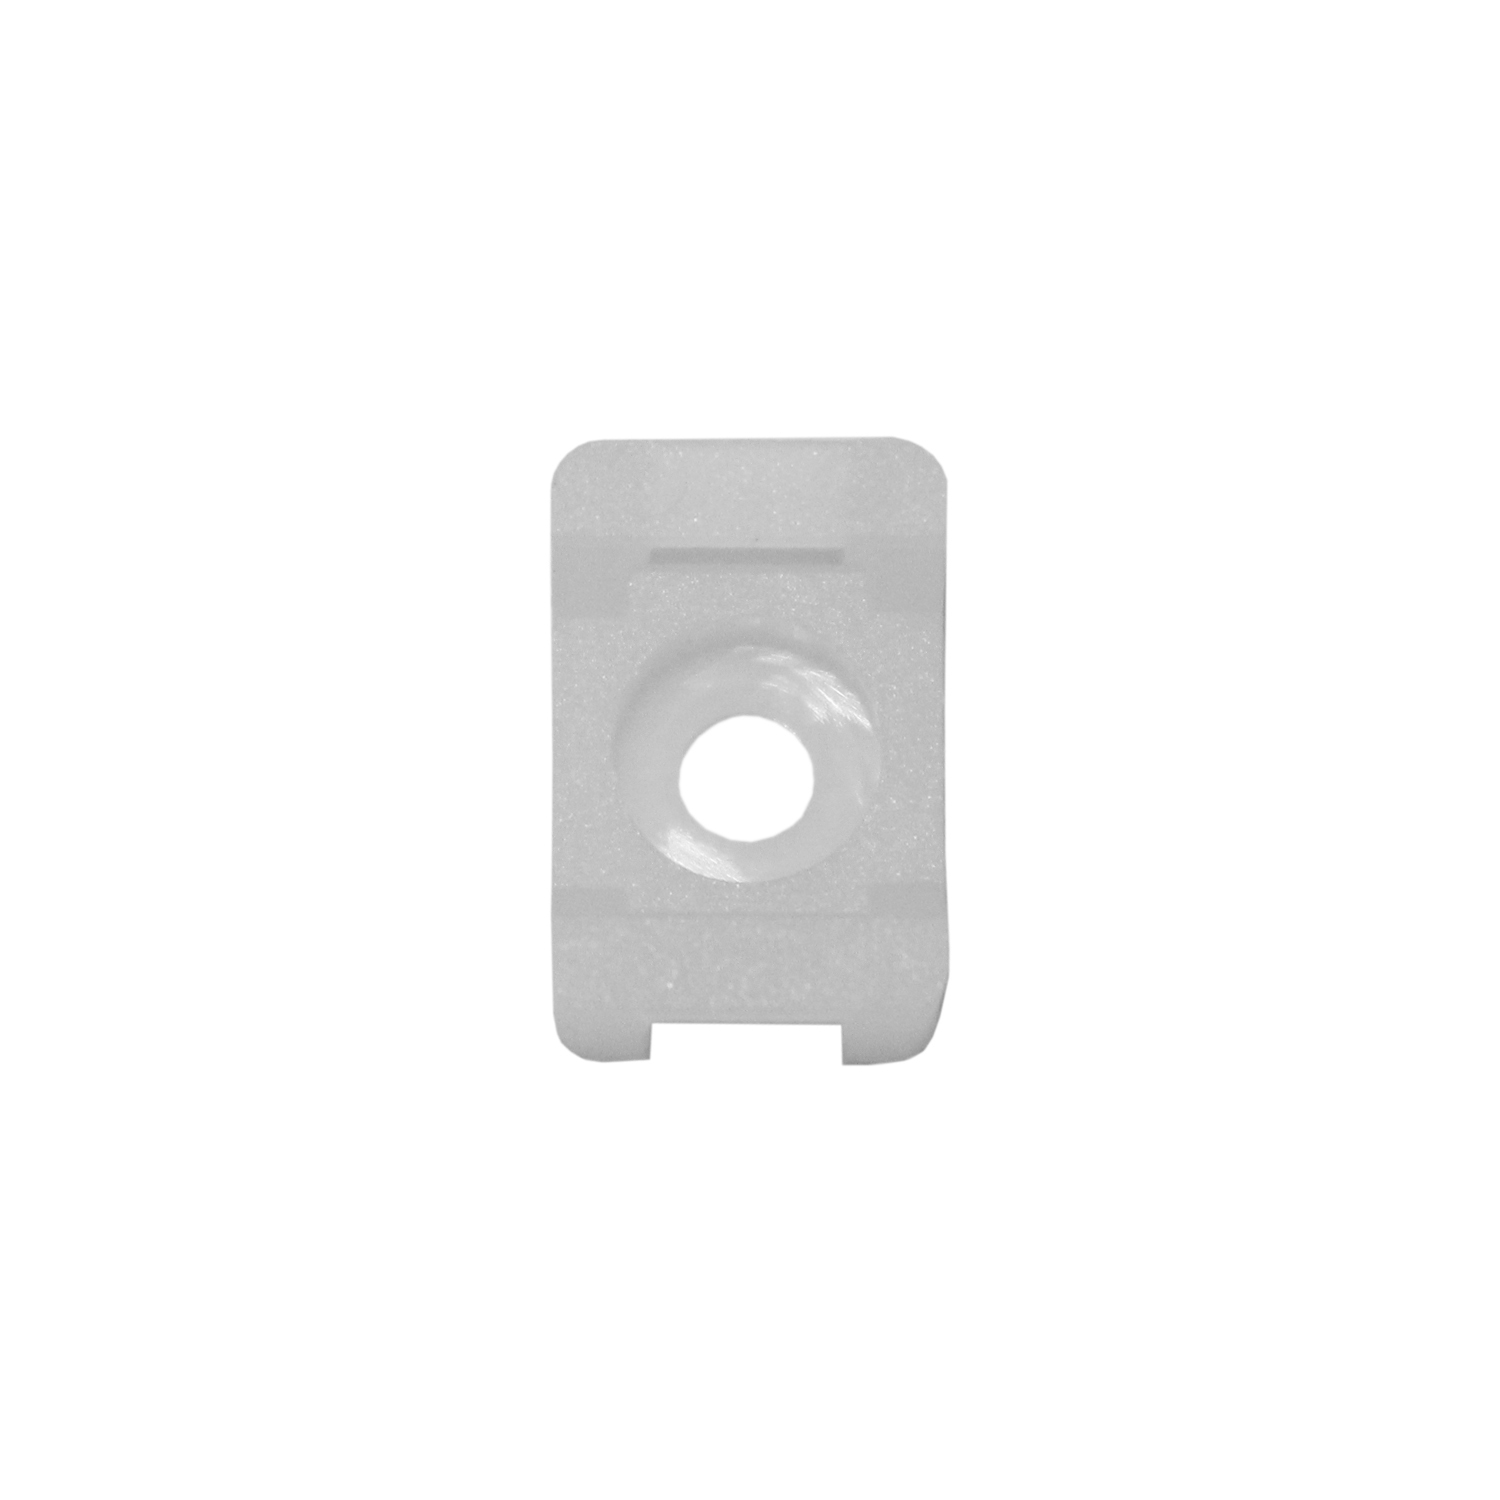 White Round Cable Clips For Wall Mounting Cables 4.5mm Pack Of